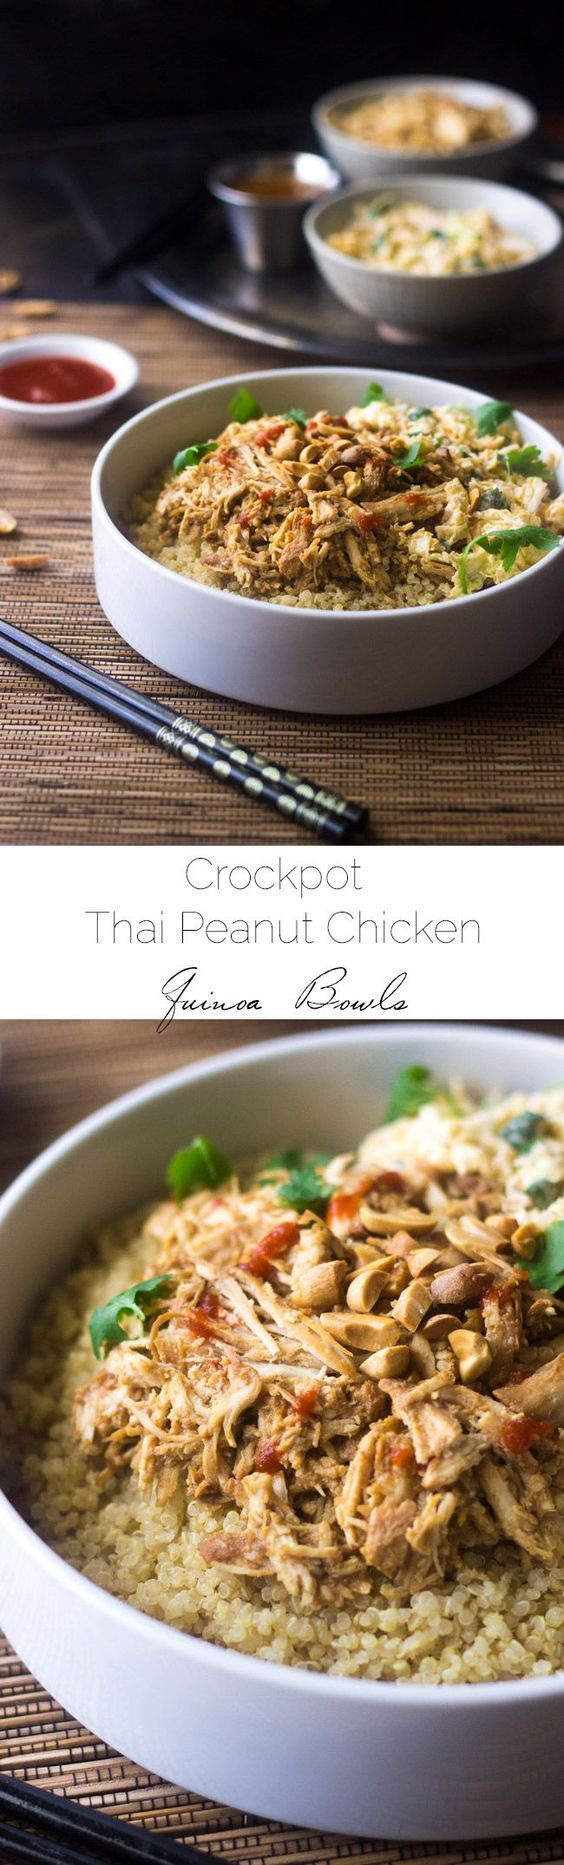 Crockpot Thai Peanut Chicken Quinoa Bowls - An easy, weeknight friendly dinner where the slow cooker does all the work for you! It tastes like your favorite Thai restaurant, but is healthy and gluten free! | Foodfaithfitness.com | #recipe